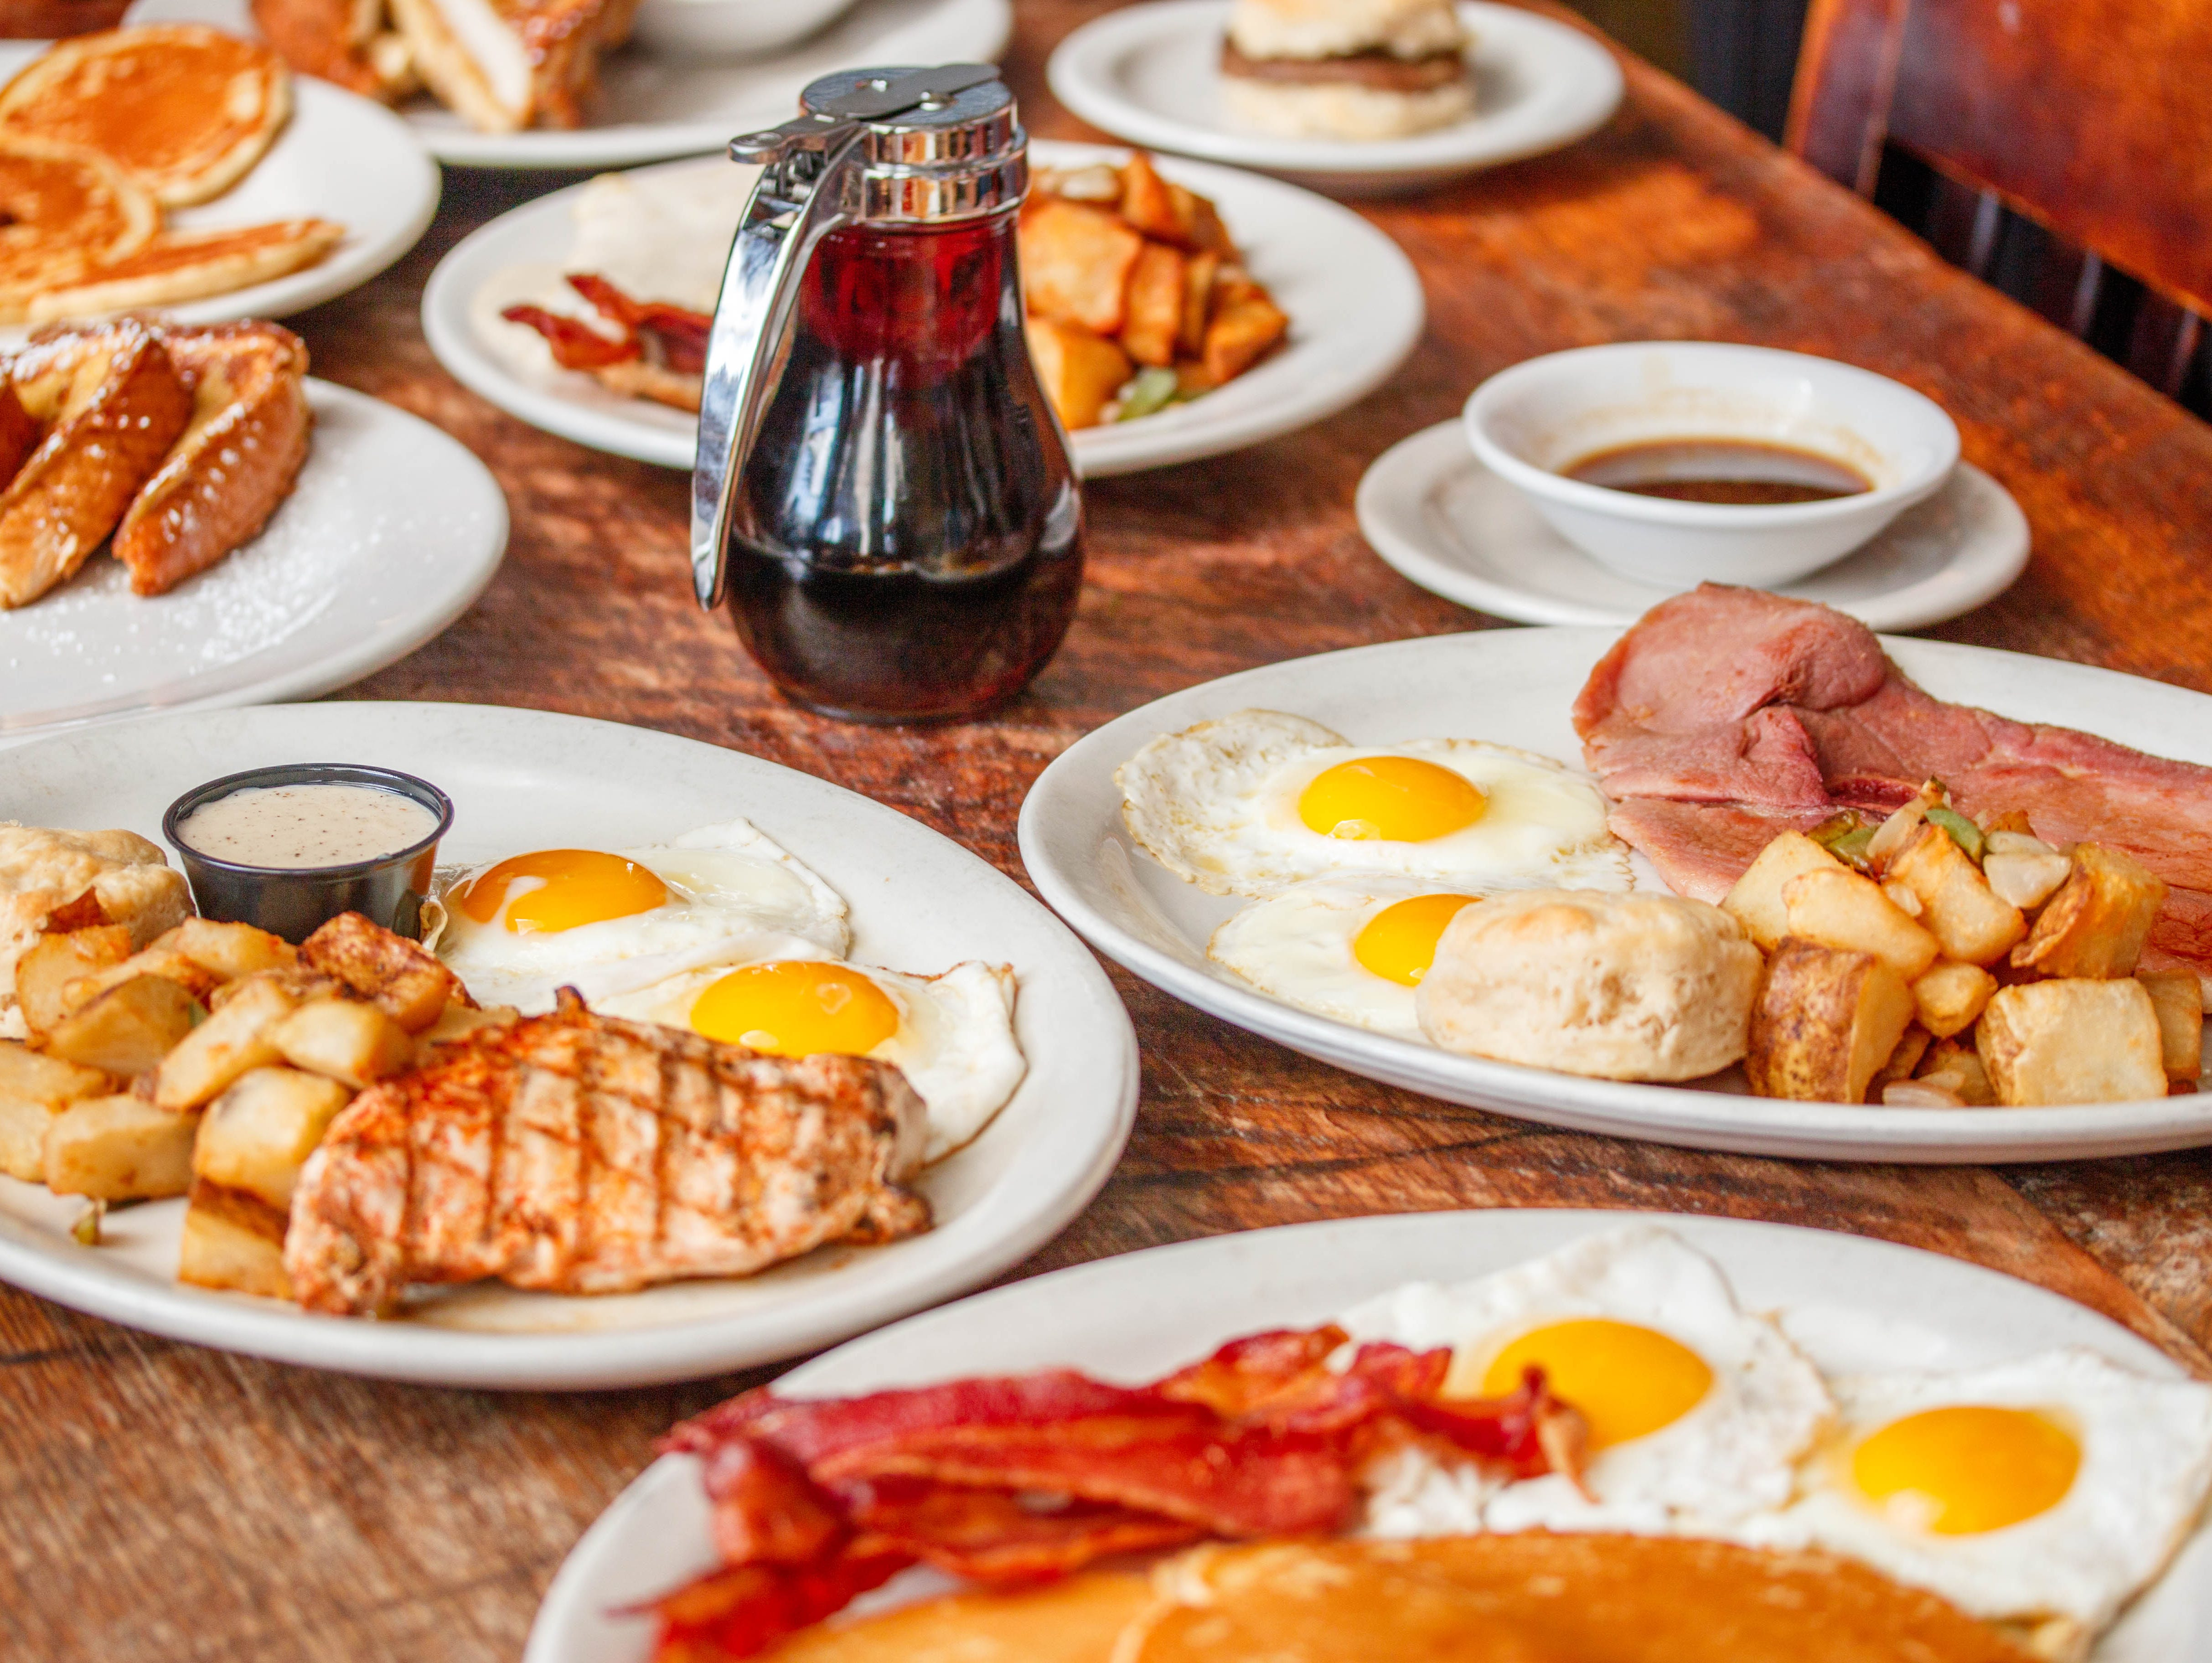 Savor the most important meal of the day with $50 to one of Acadiana's favorite restaurants!